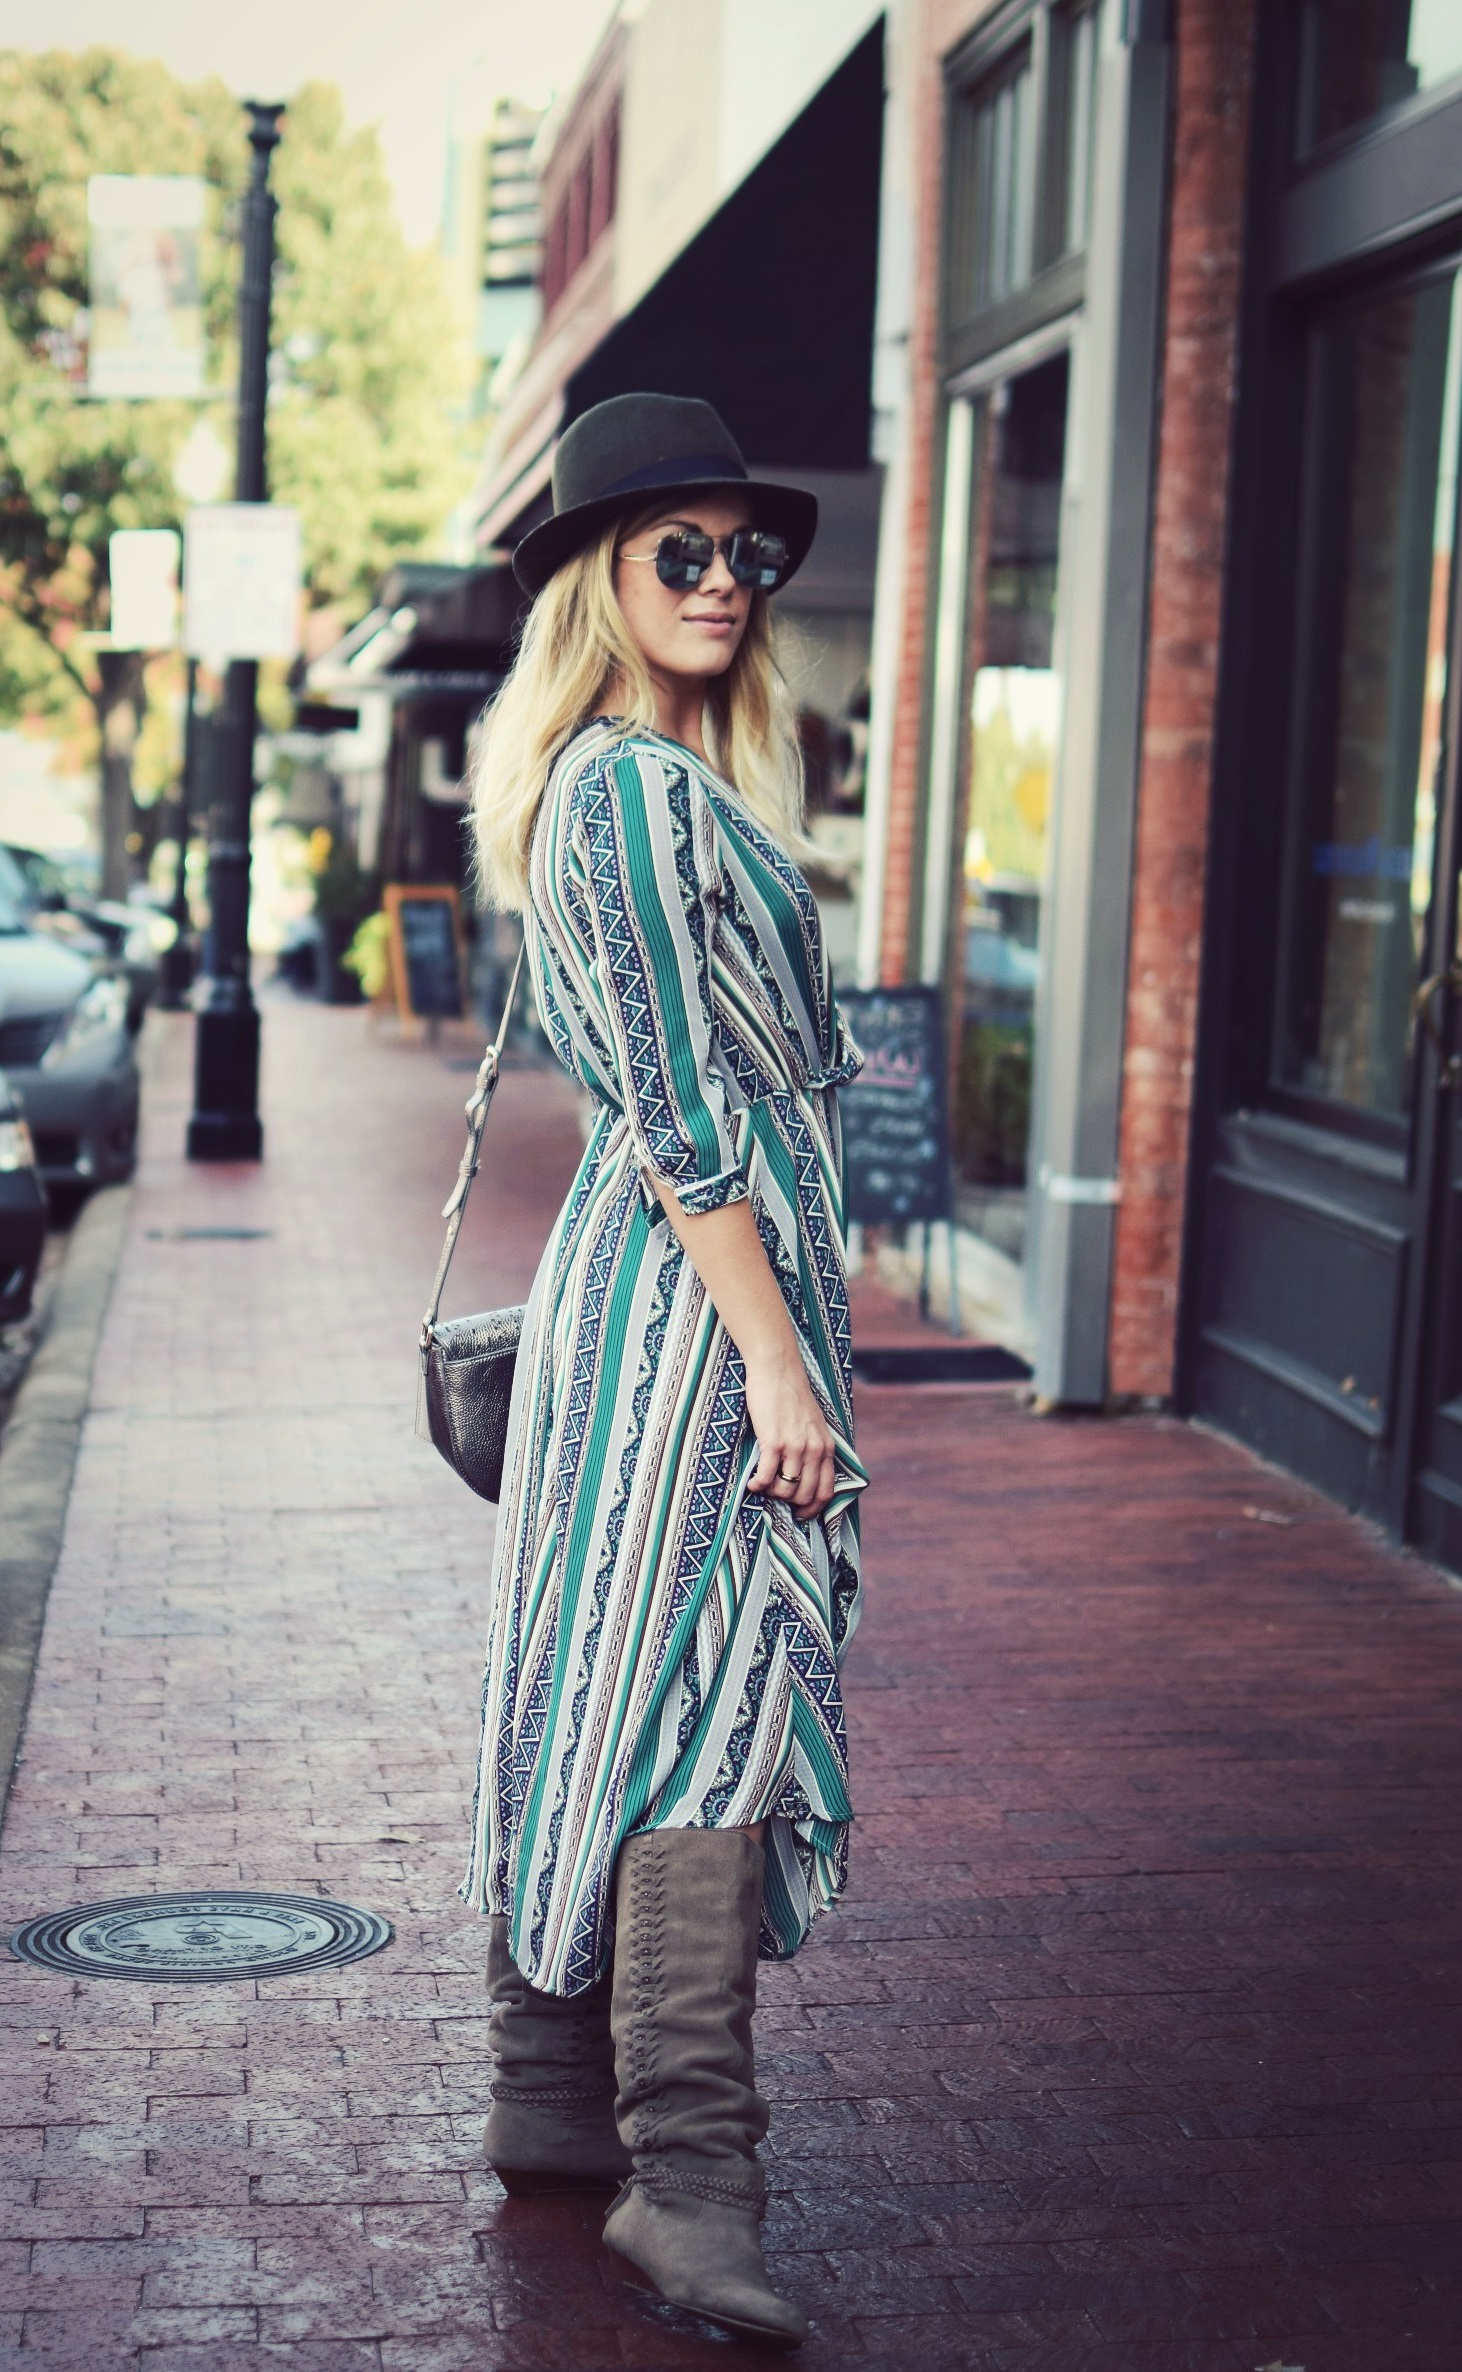 vintage on vintage in downtown plano